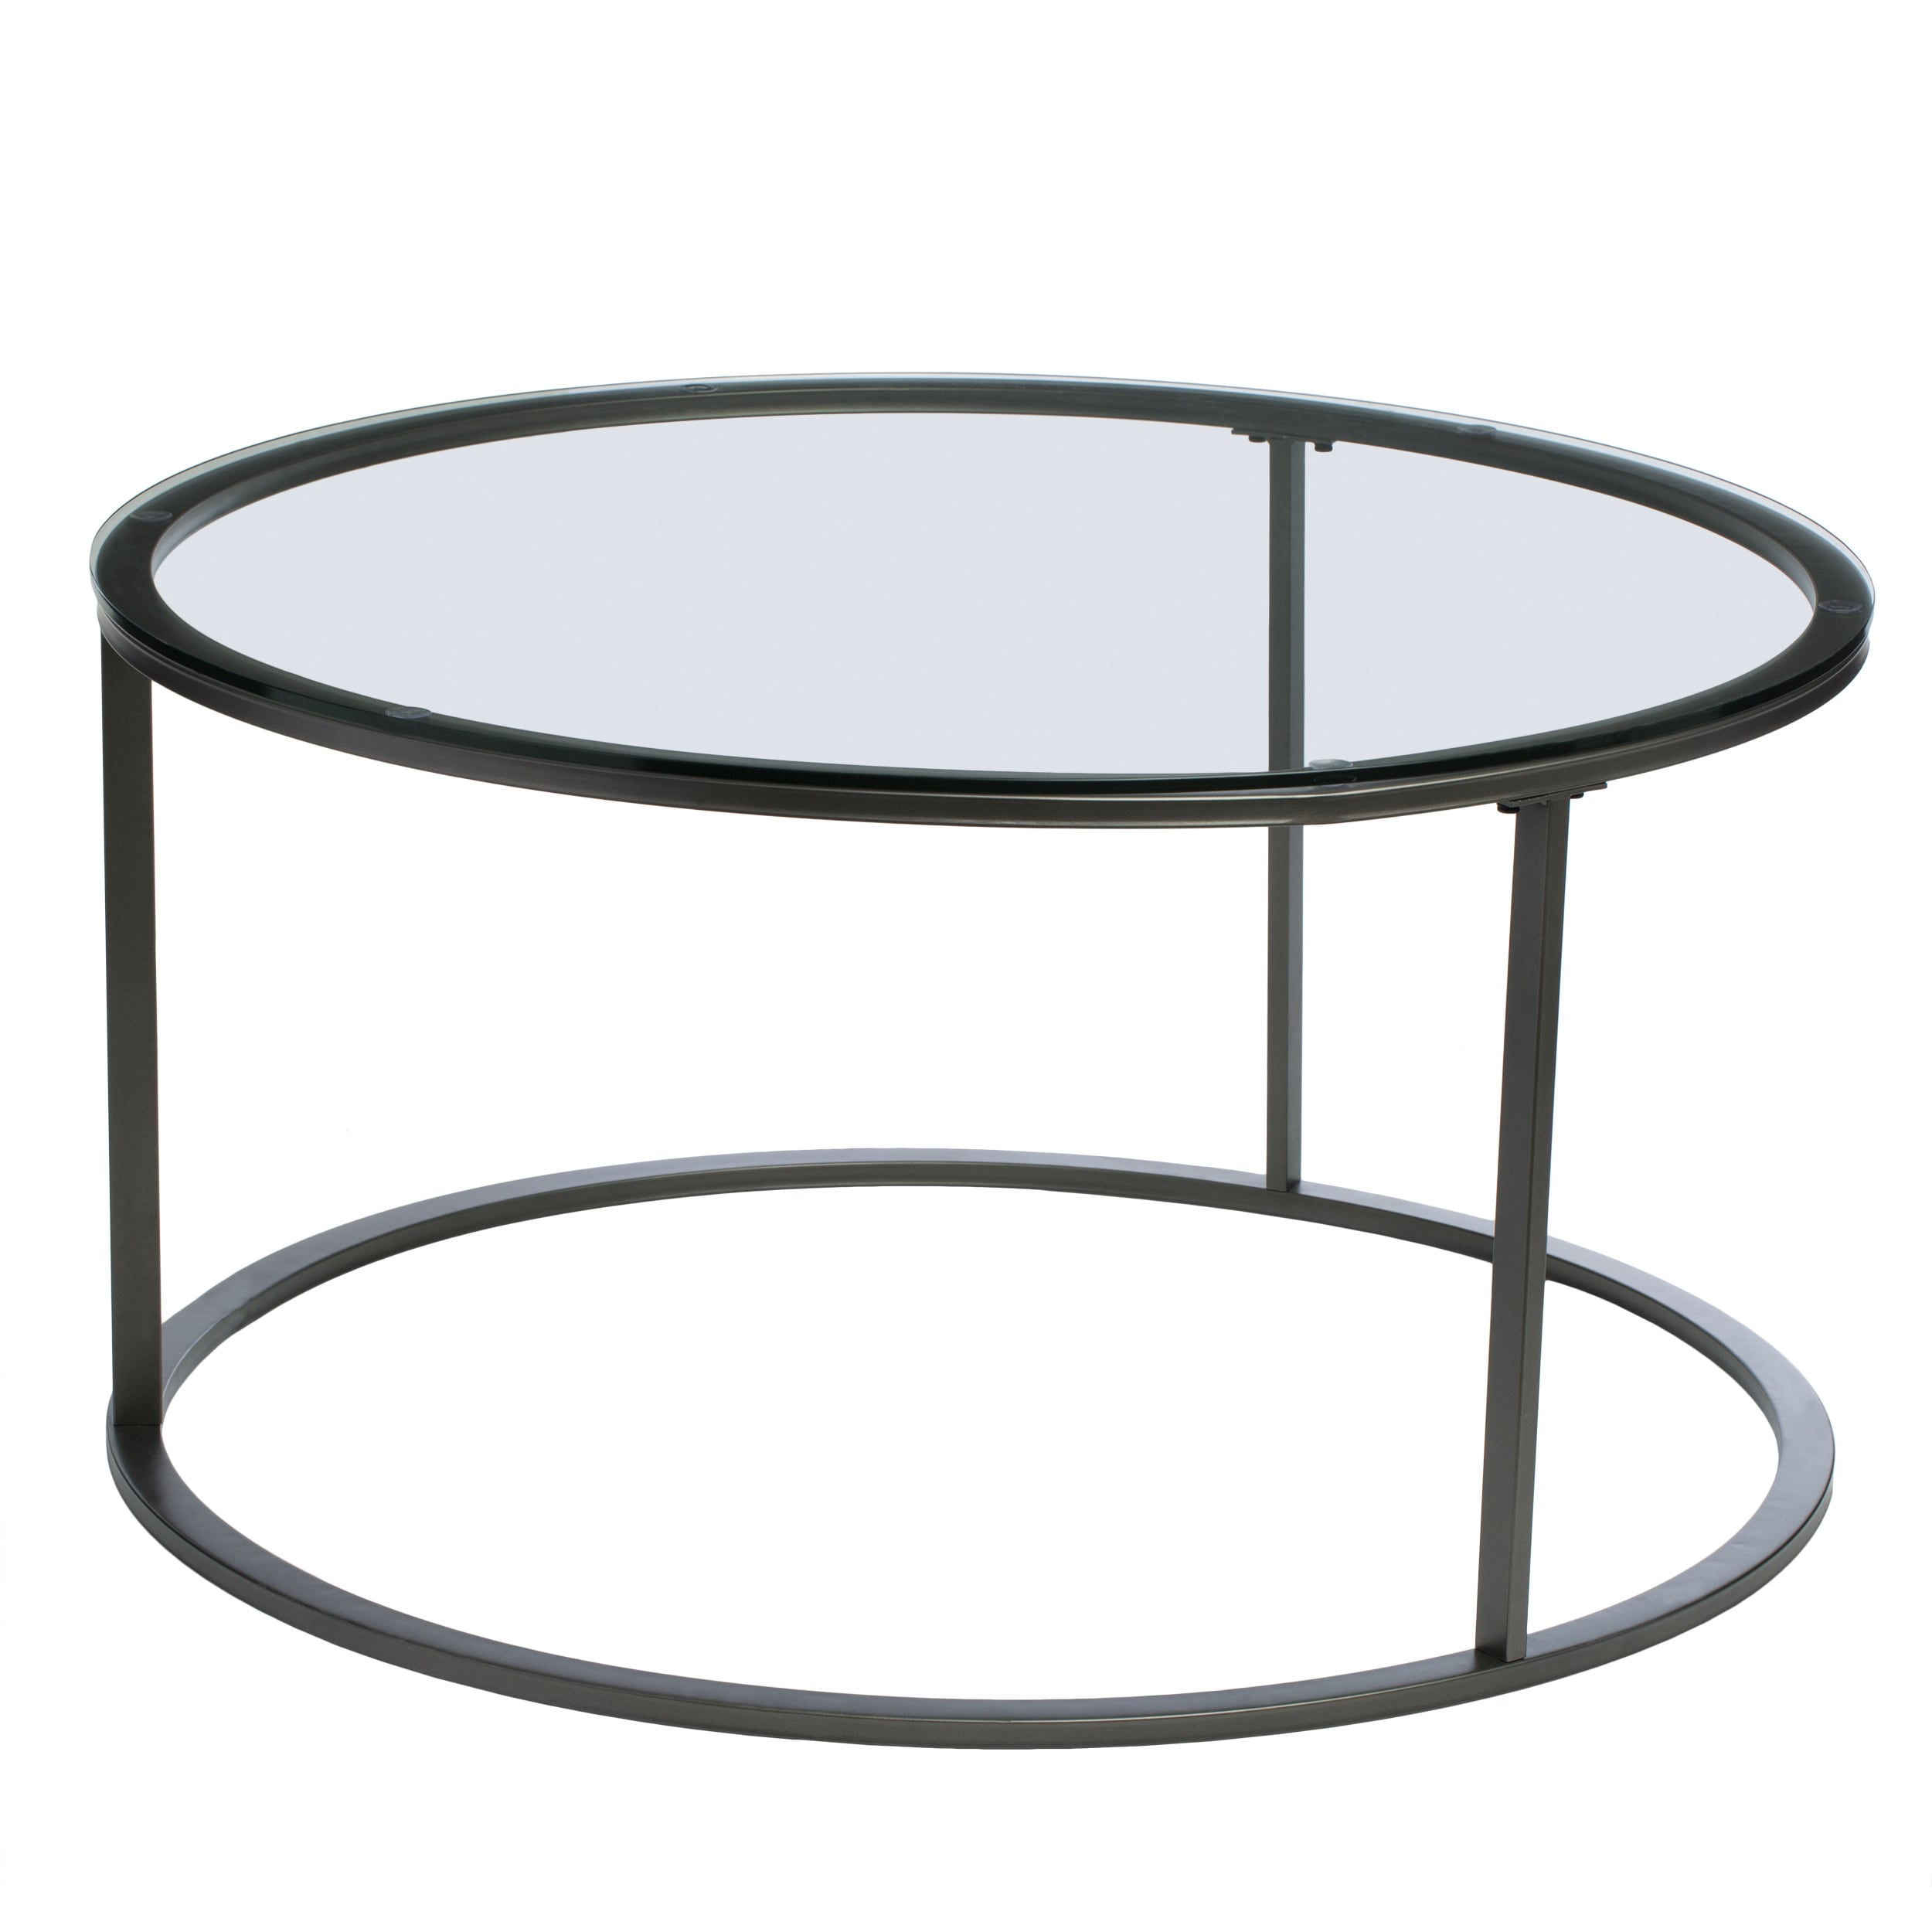 Exceptionnel Shop Clay Alder Home Round Glass Top Metal Coffee Table   Free Shipping  Today   Overstock.com   6434389